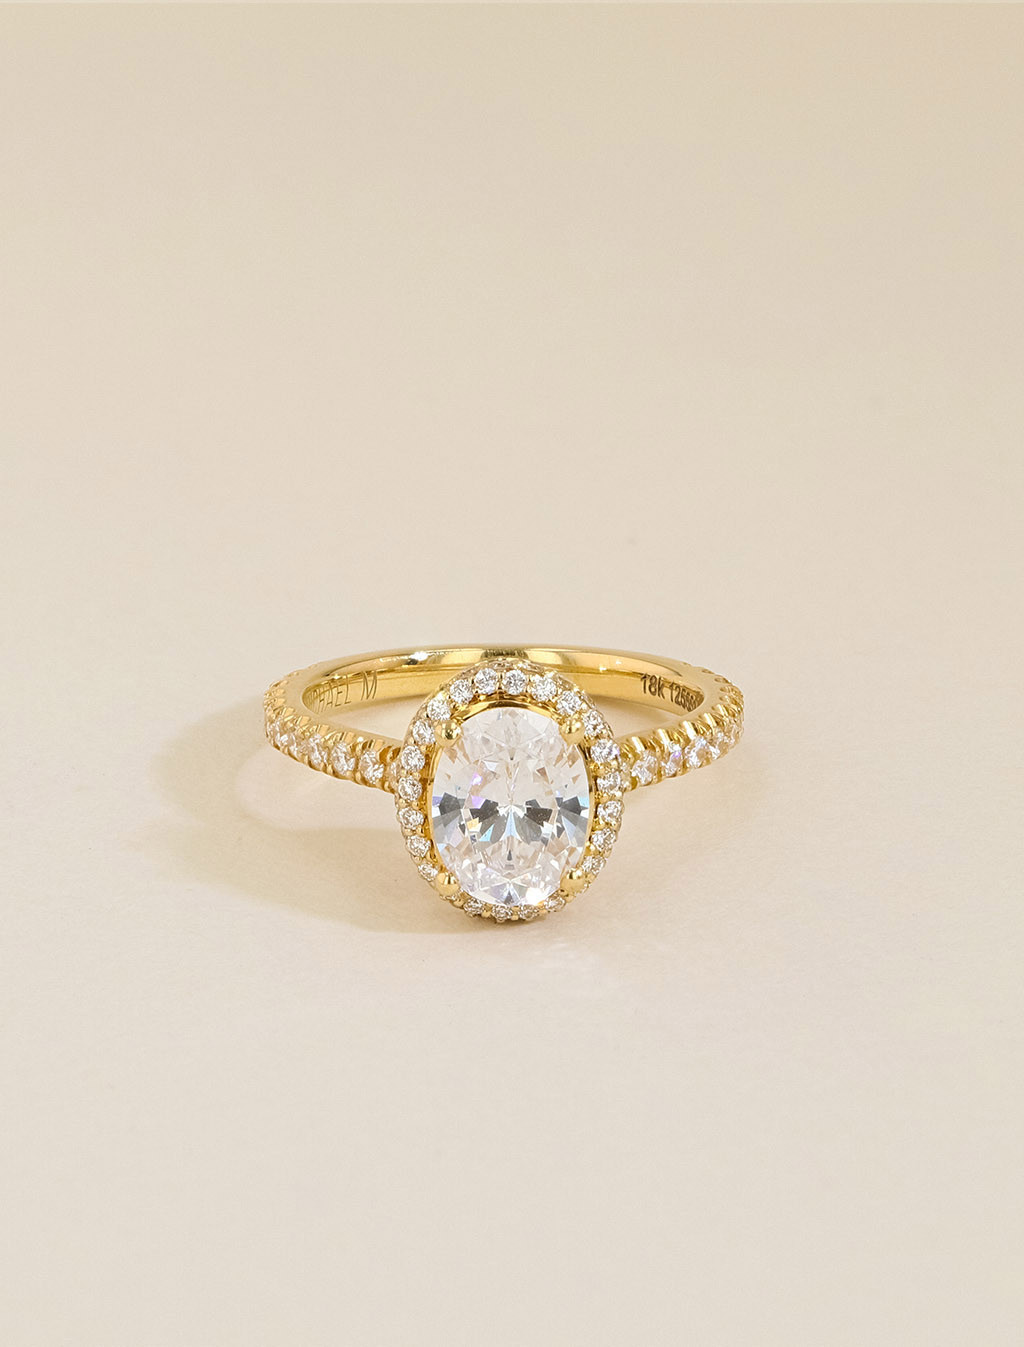 Michael M 18K Gold Oval Halo Pavé Diamond Engagement Ring Setting front view